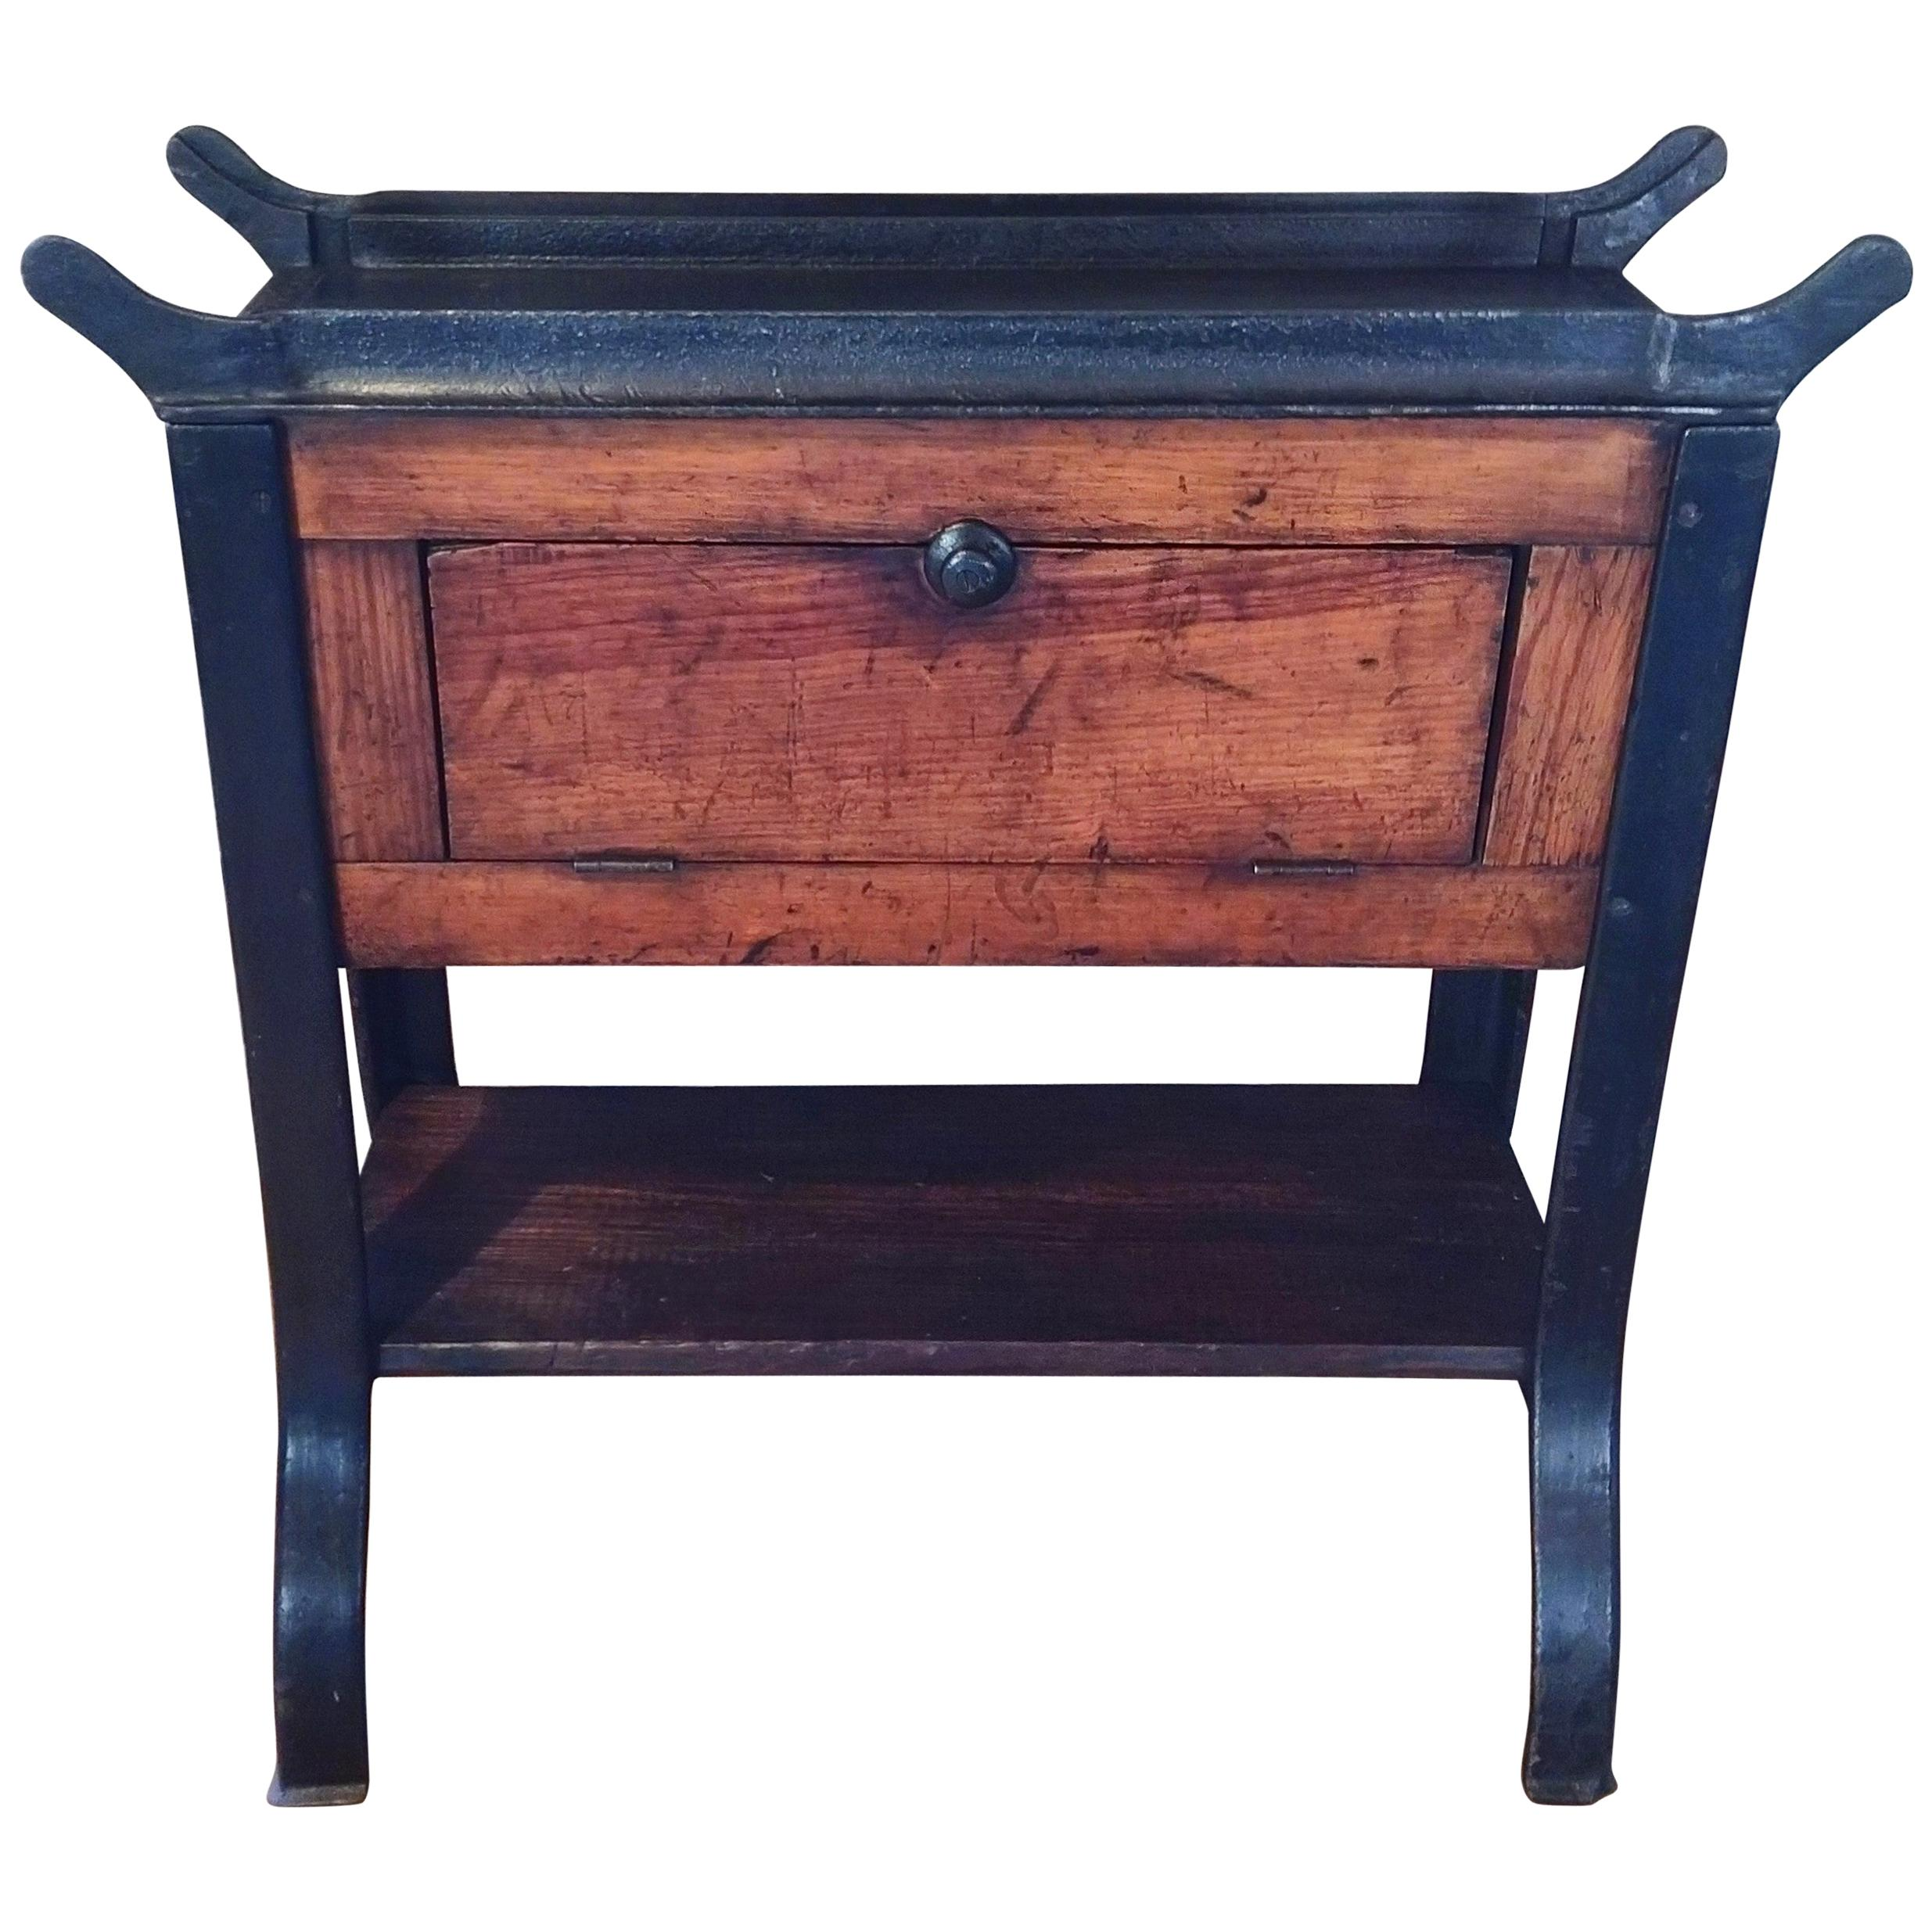 Vintage Industrial Wood and Cast Iron Printer's Proof Table